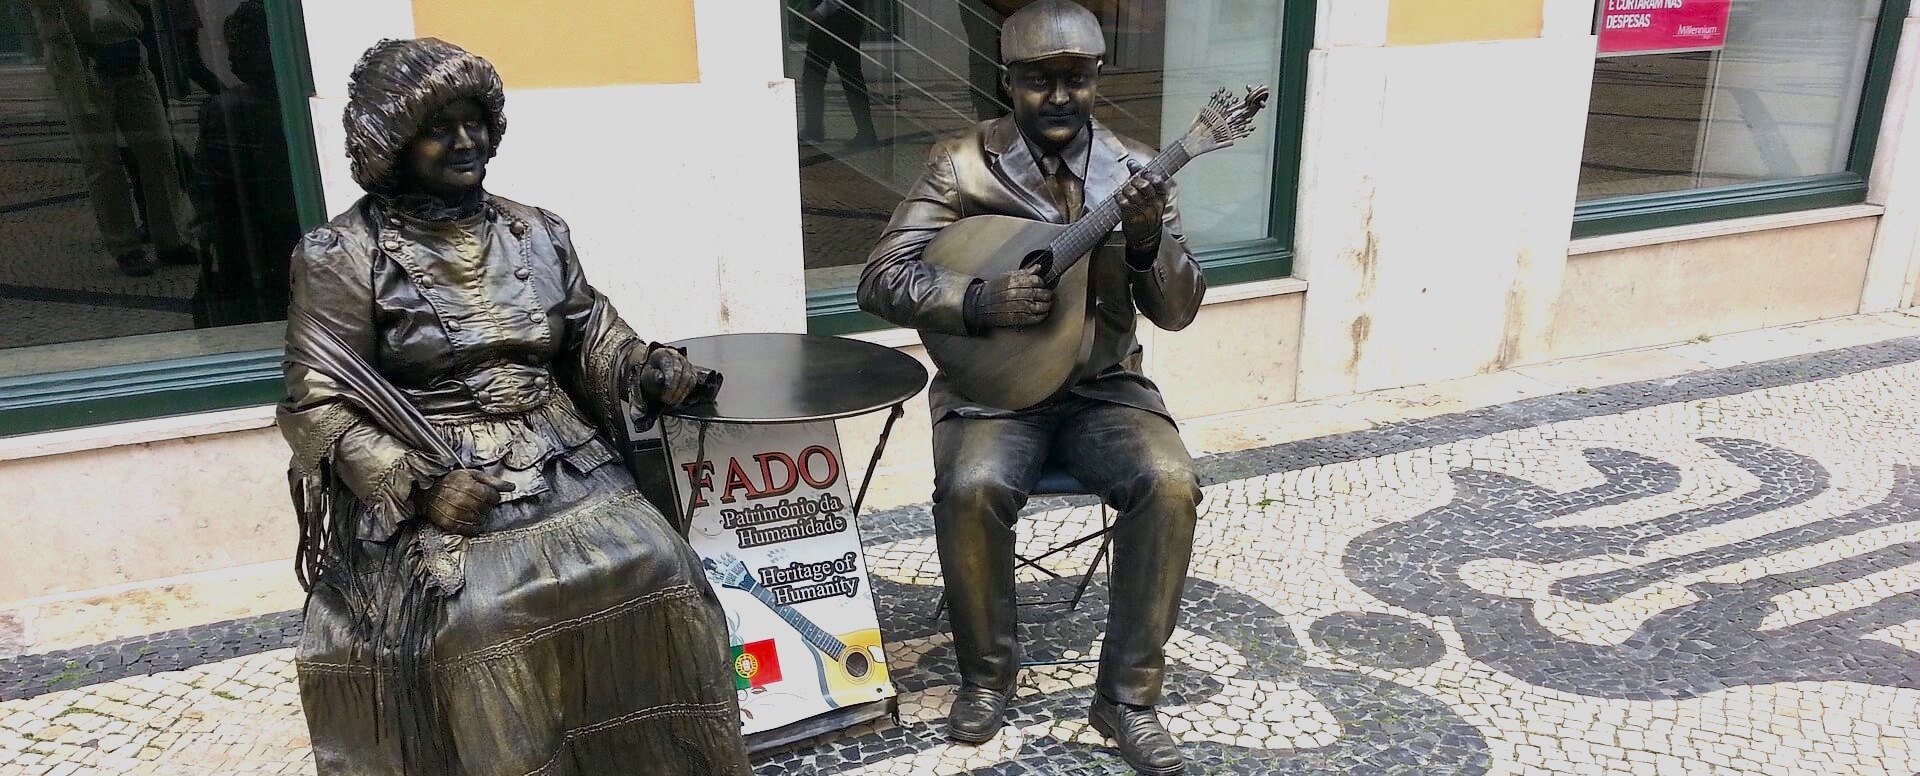 Fado: part of the identity of Portugal - Portugal